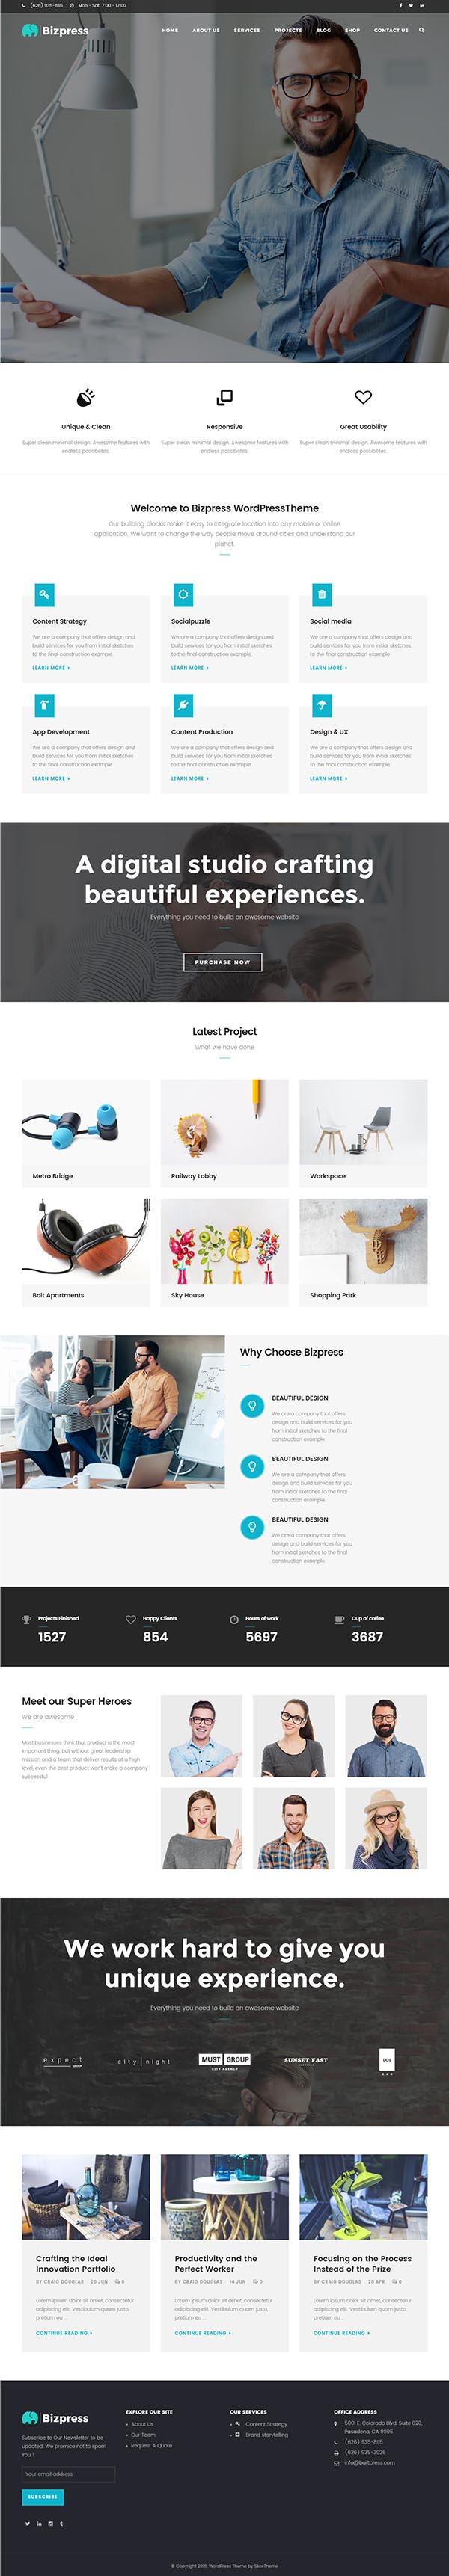 BizPress – Business & Corporate WordPress Theme